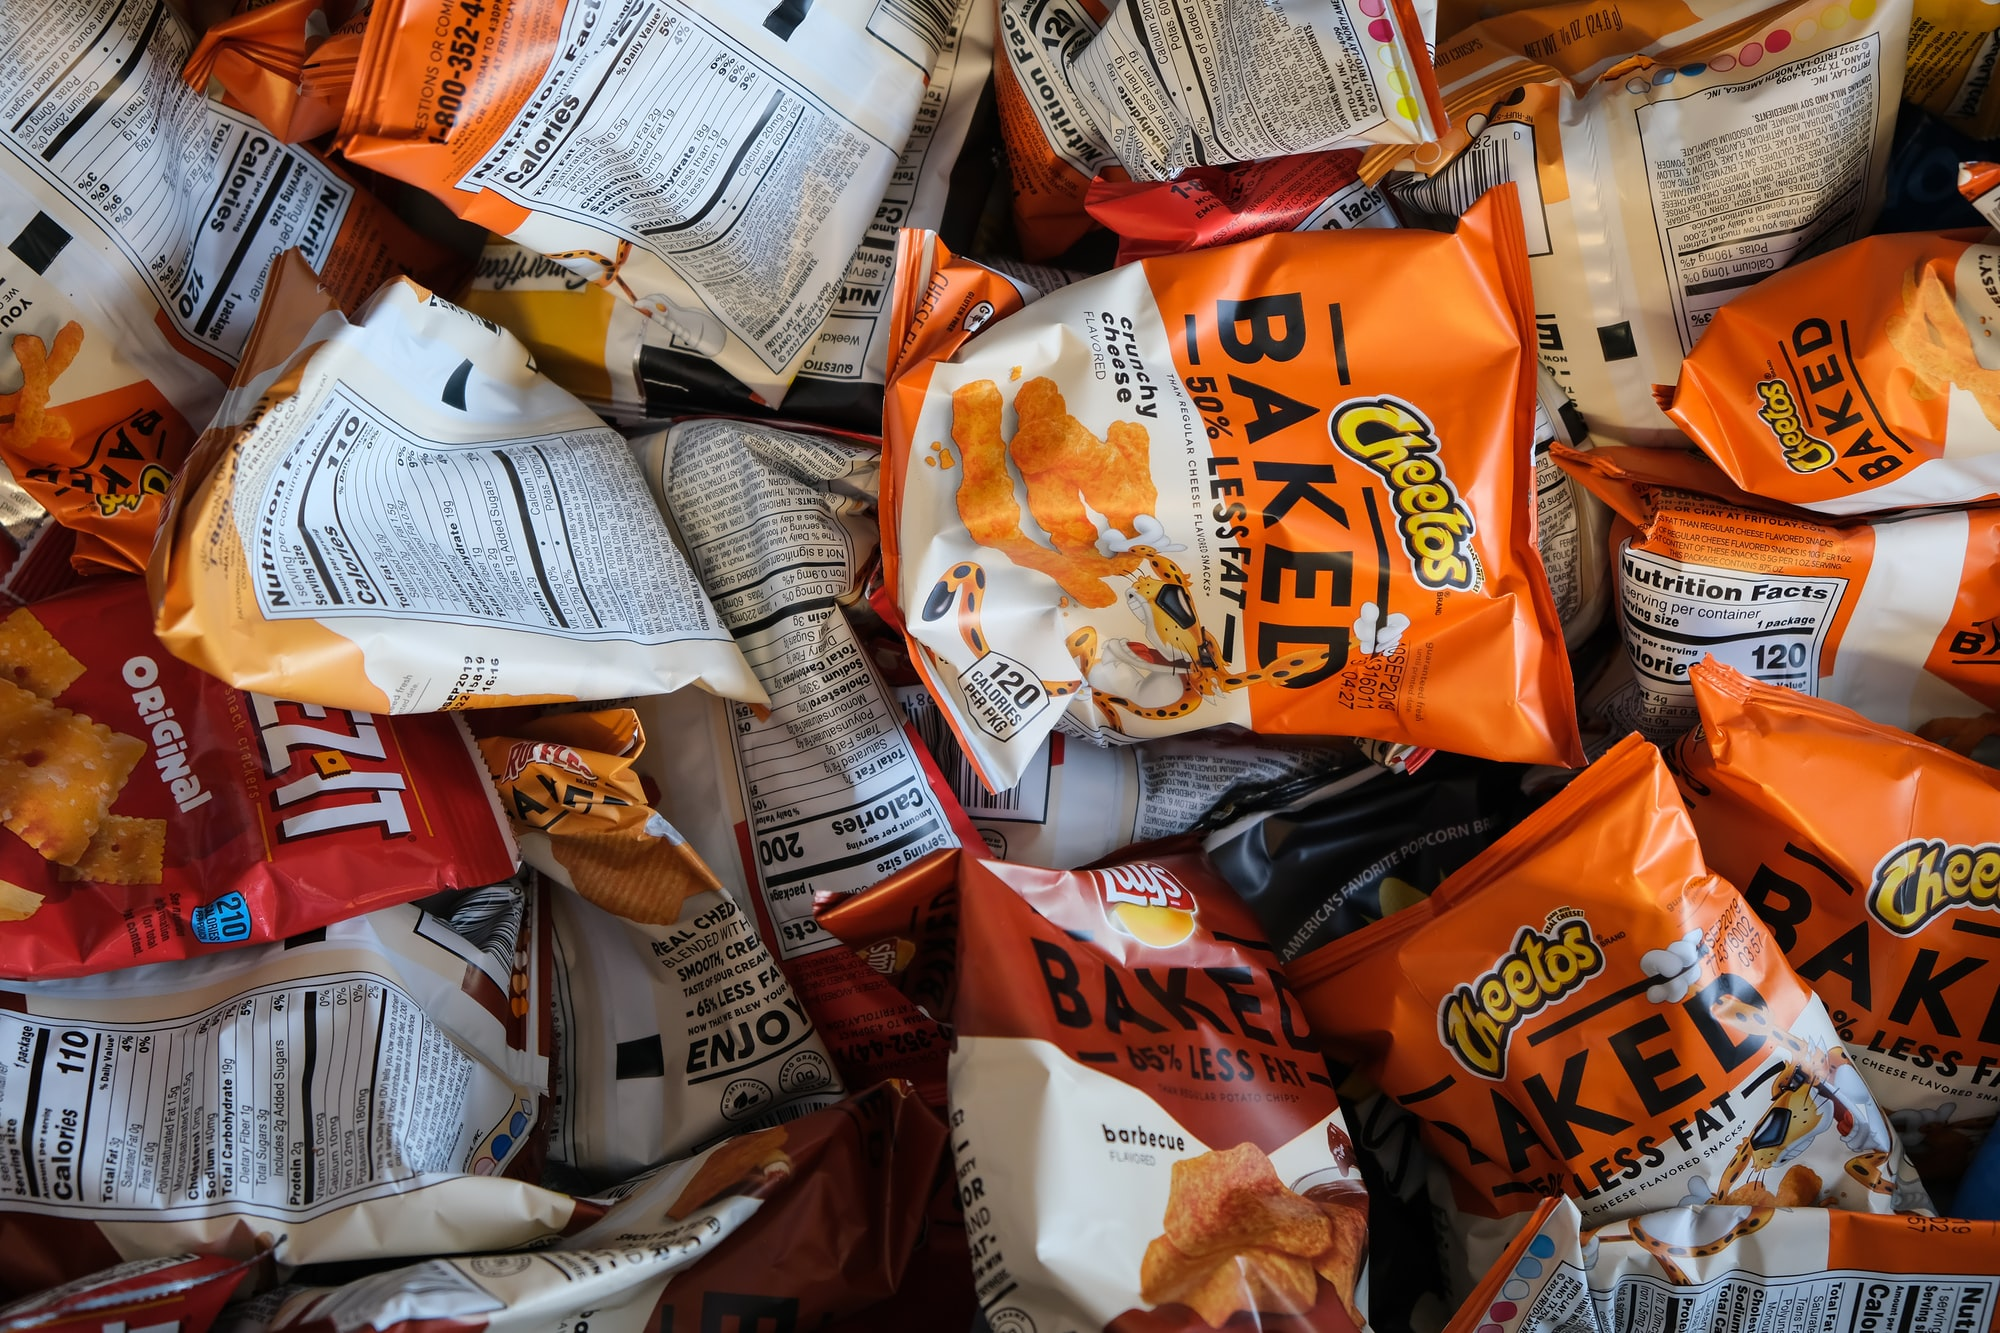 Baked chips and other bags of reduced fat junk food.